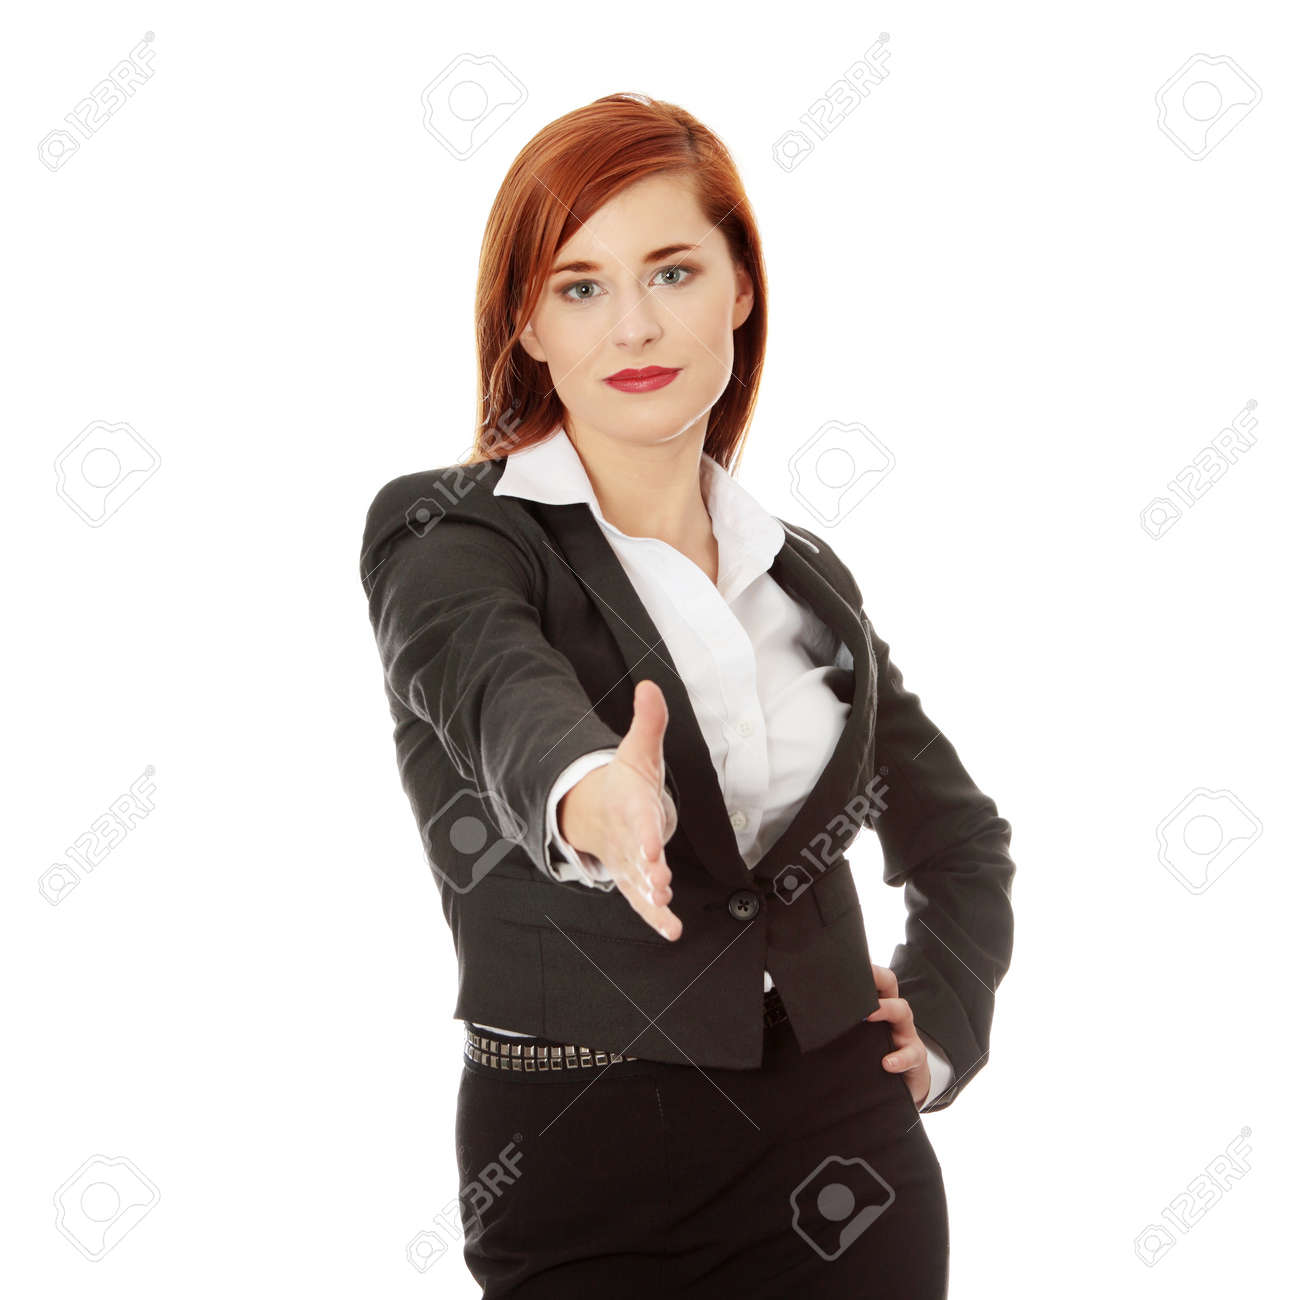 Business woman extend hand over white background Stock Photo - 8959567